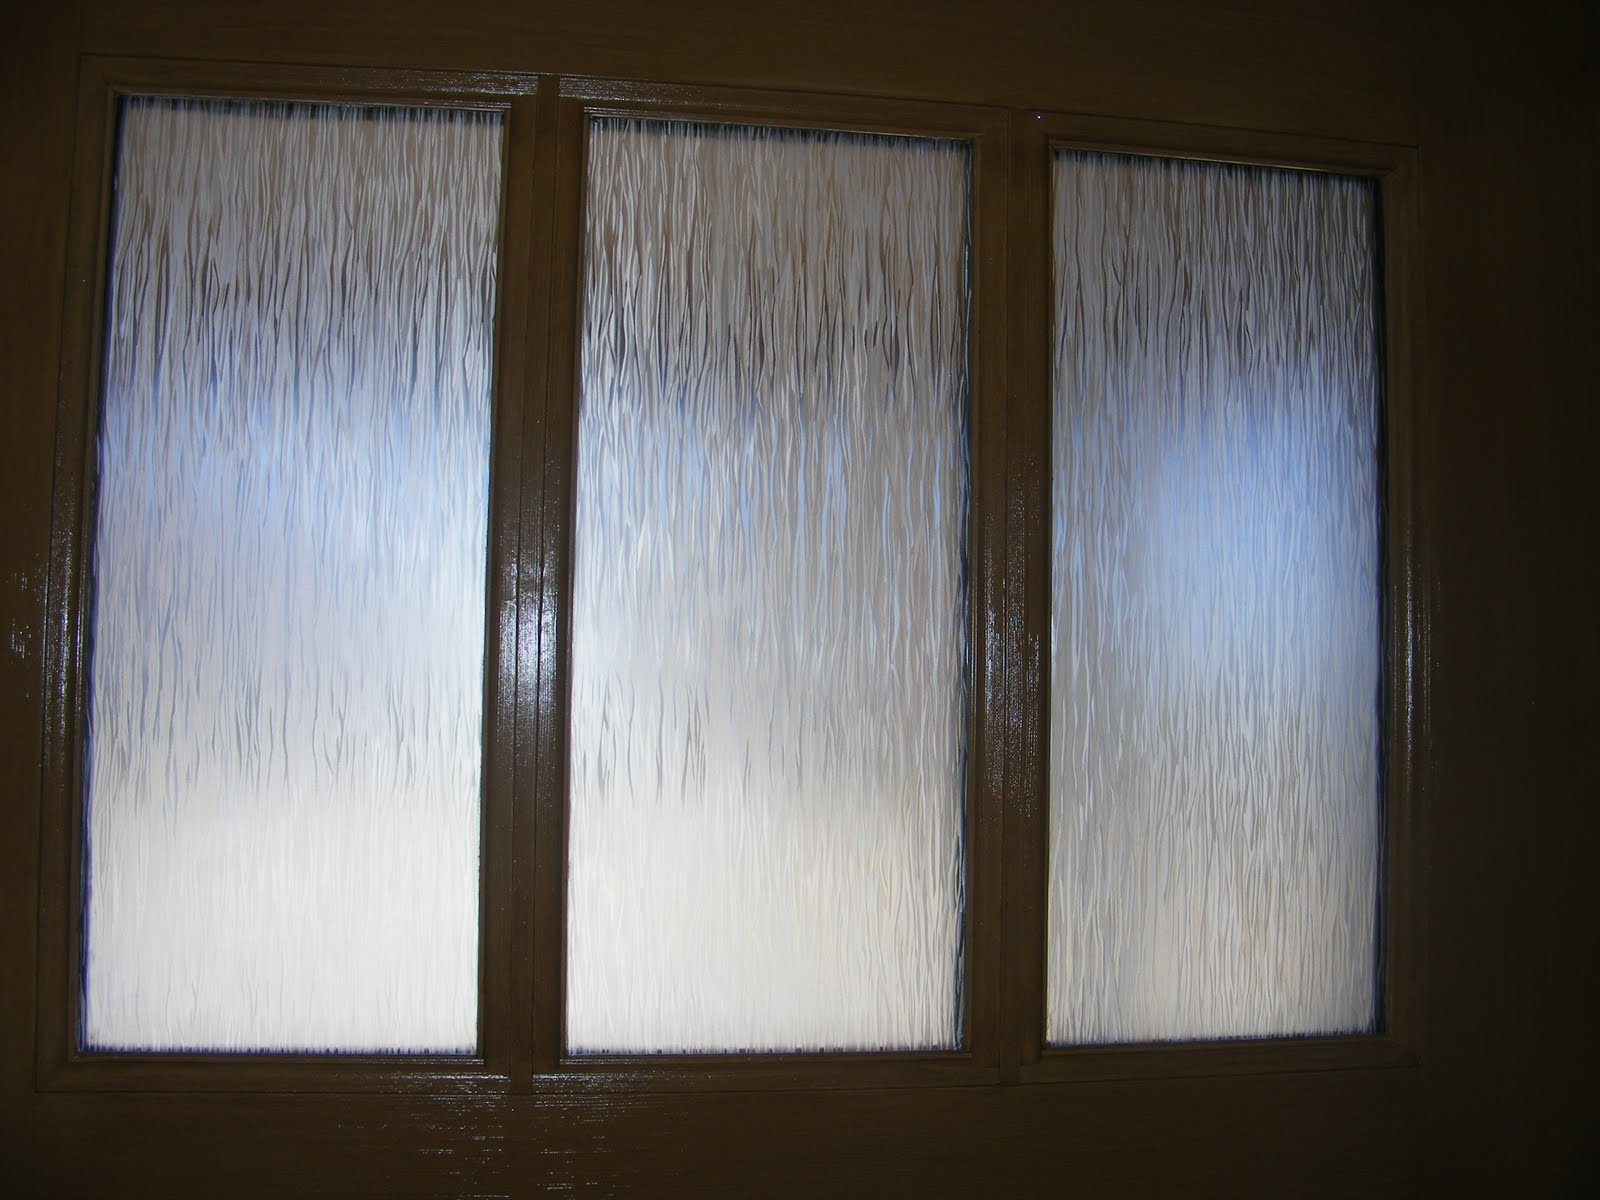 Clear view window films privacy window film for Window tint film